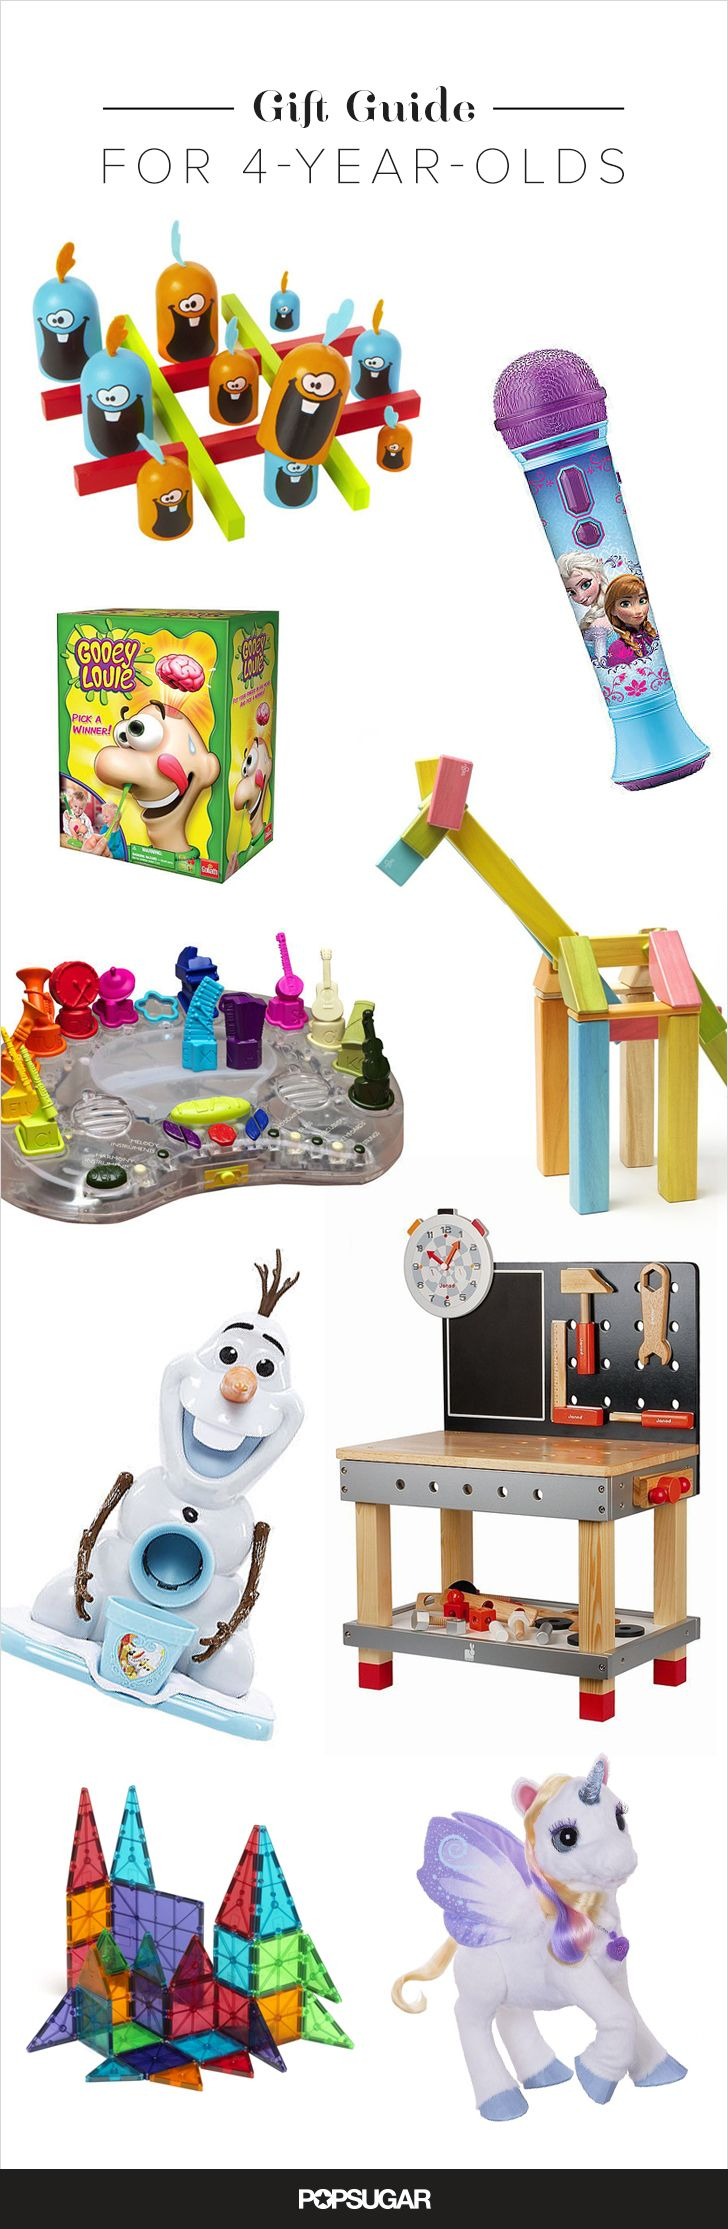 These fun finds — including arts and crafts projects, racing cars, and magnetic building tiles — are sure to be hits when your preschooler opens them!